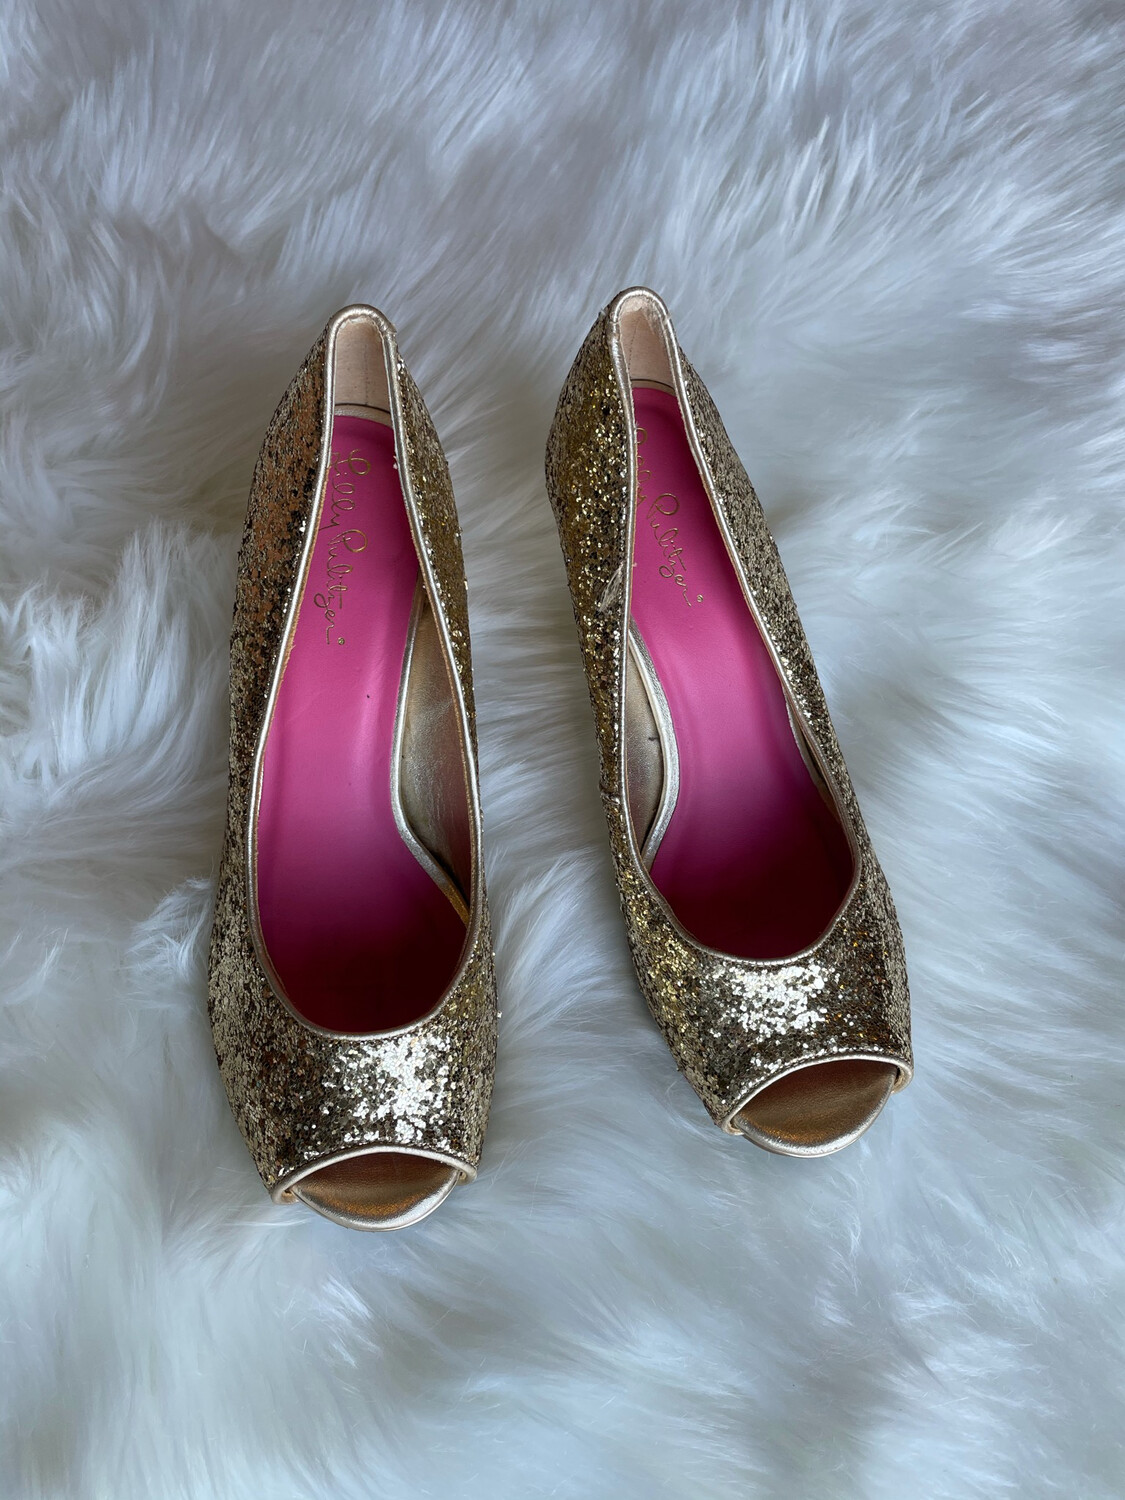 Lilly Pulitzer Gold Glitter Peep Toe Wedges -Size 7.5